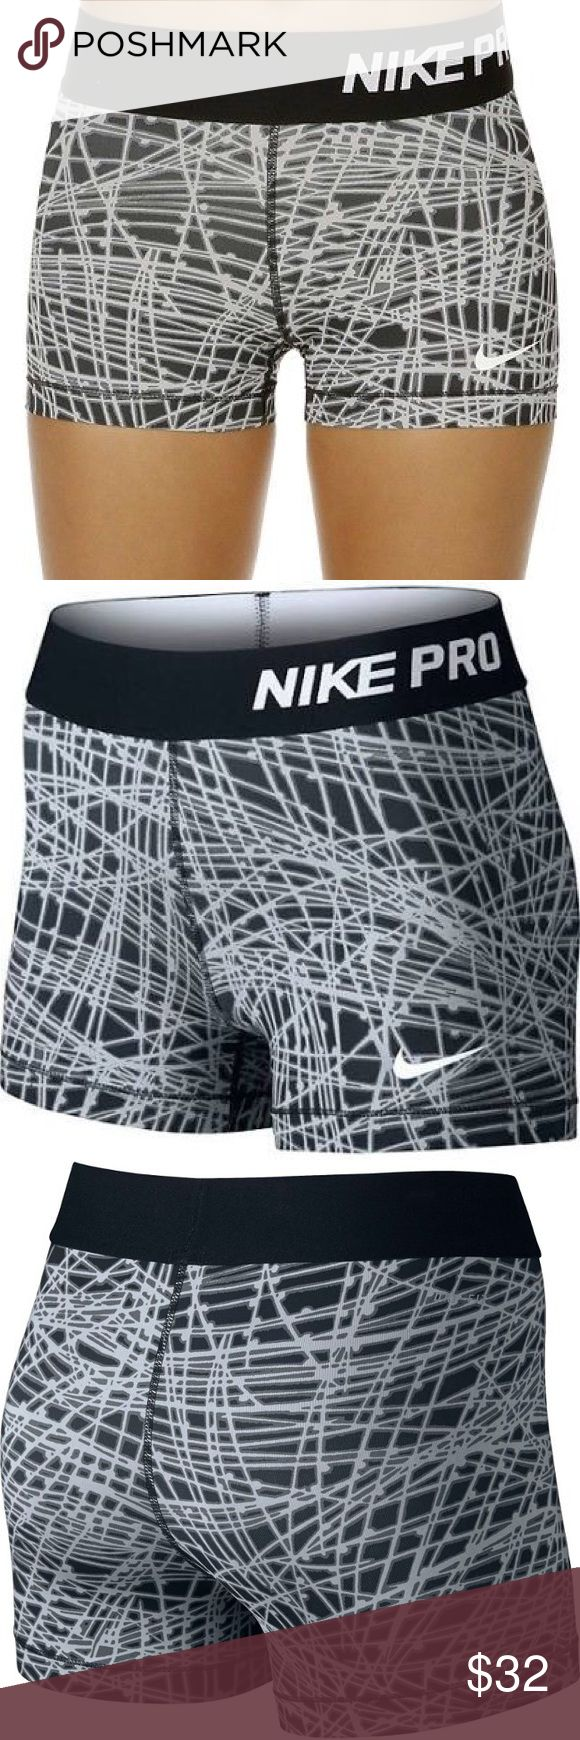 "Nike Pro 3 cool shorts NWT Nike Pro 3 cool shorts. Dri fit with 3"" inseam. NO TRADES PLEASE! Nike Shorts"